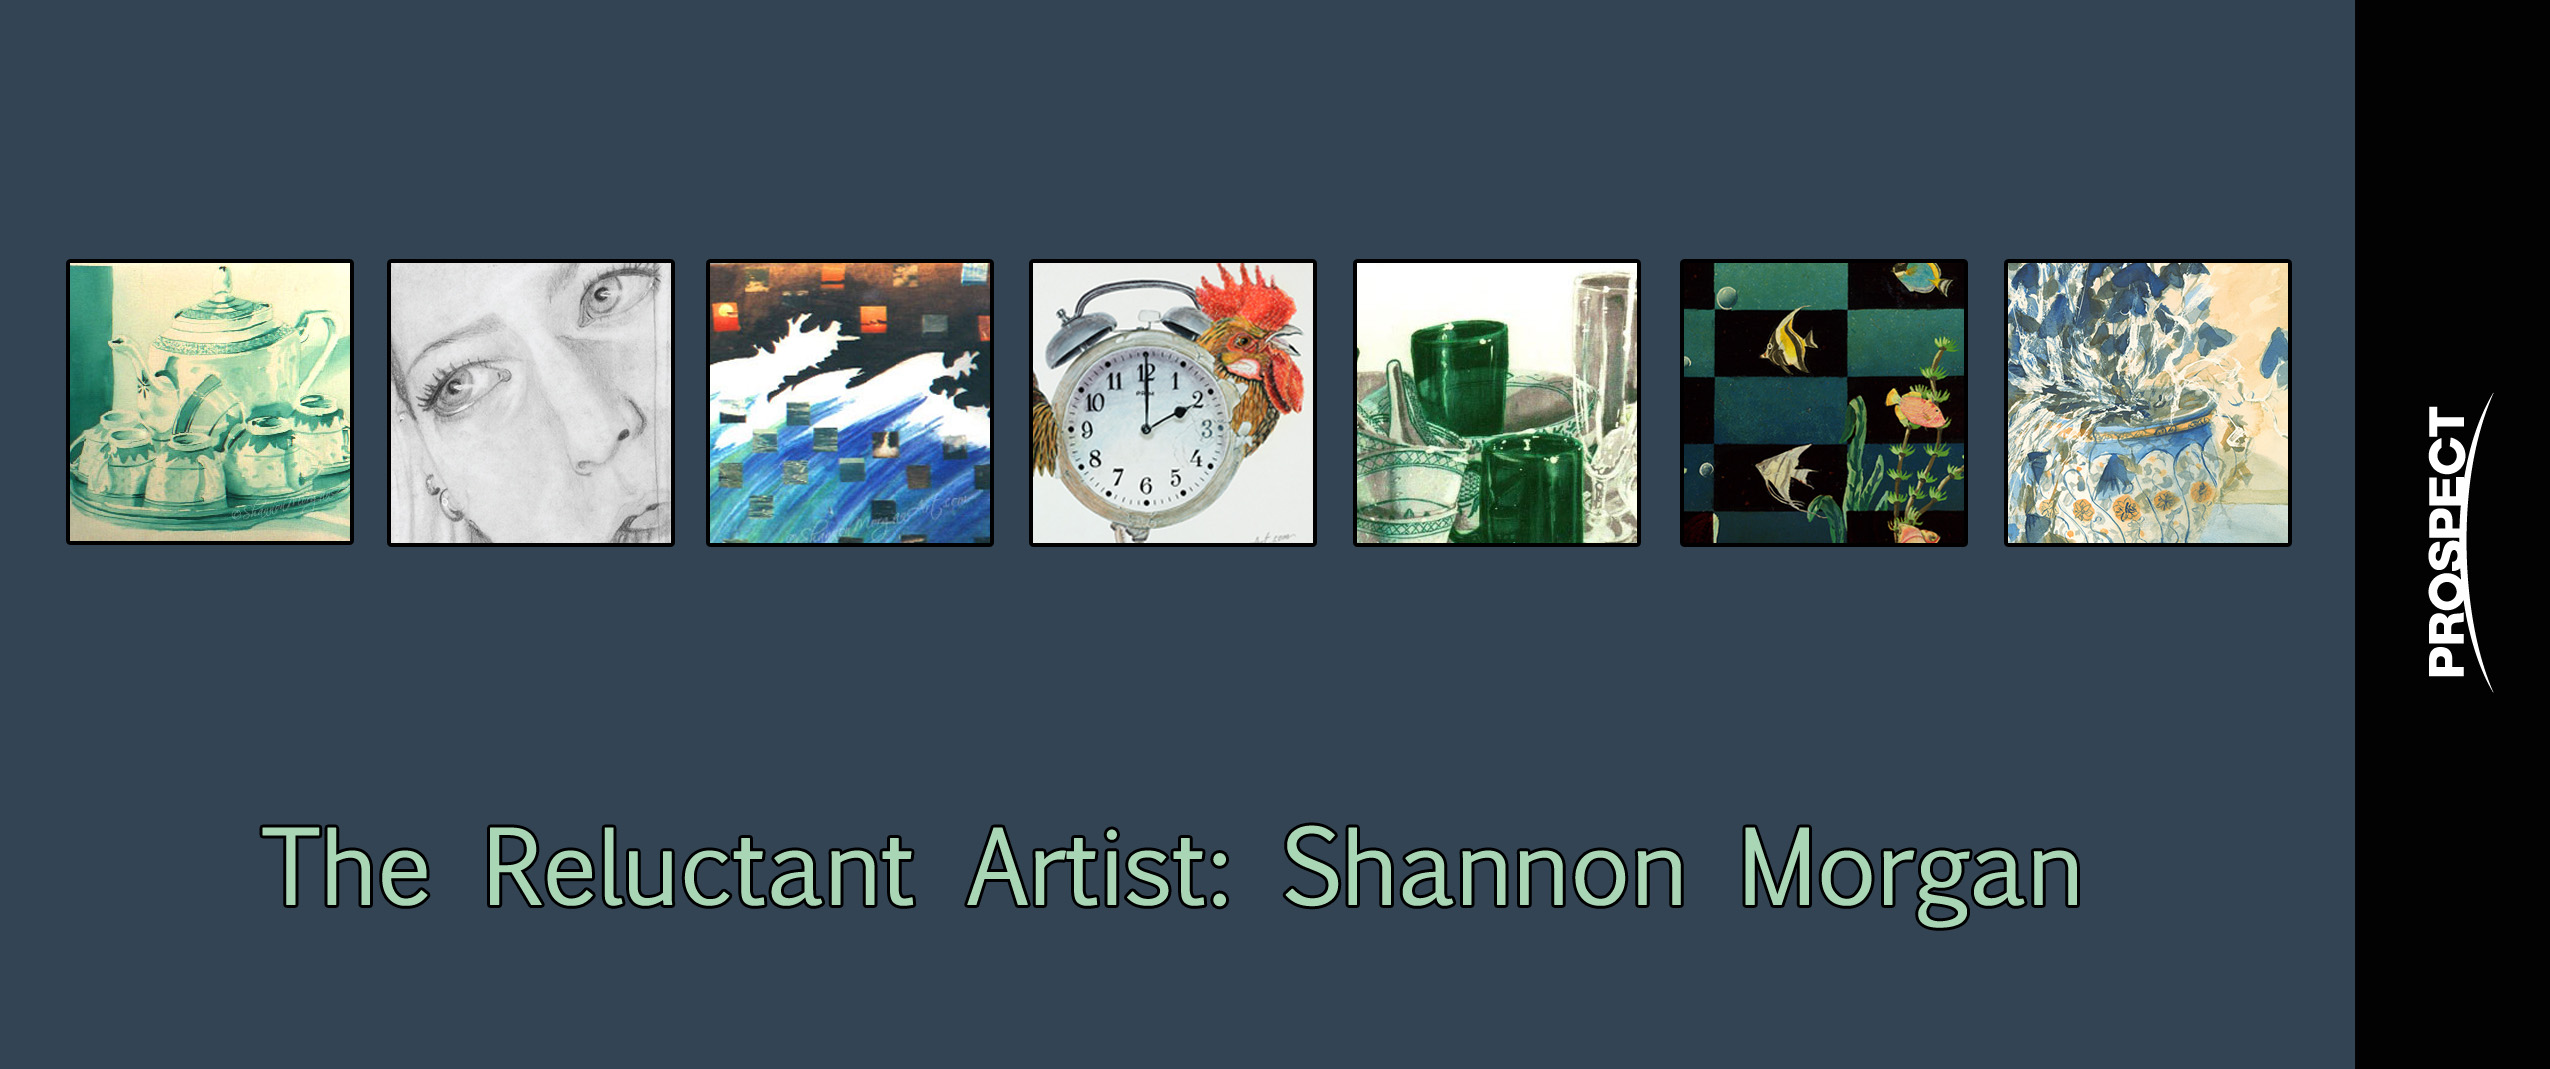 The Reluctant Artist: Shannon Morgan